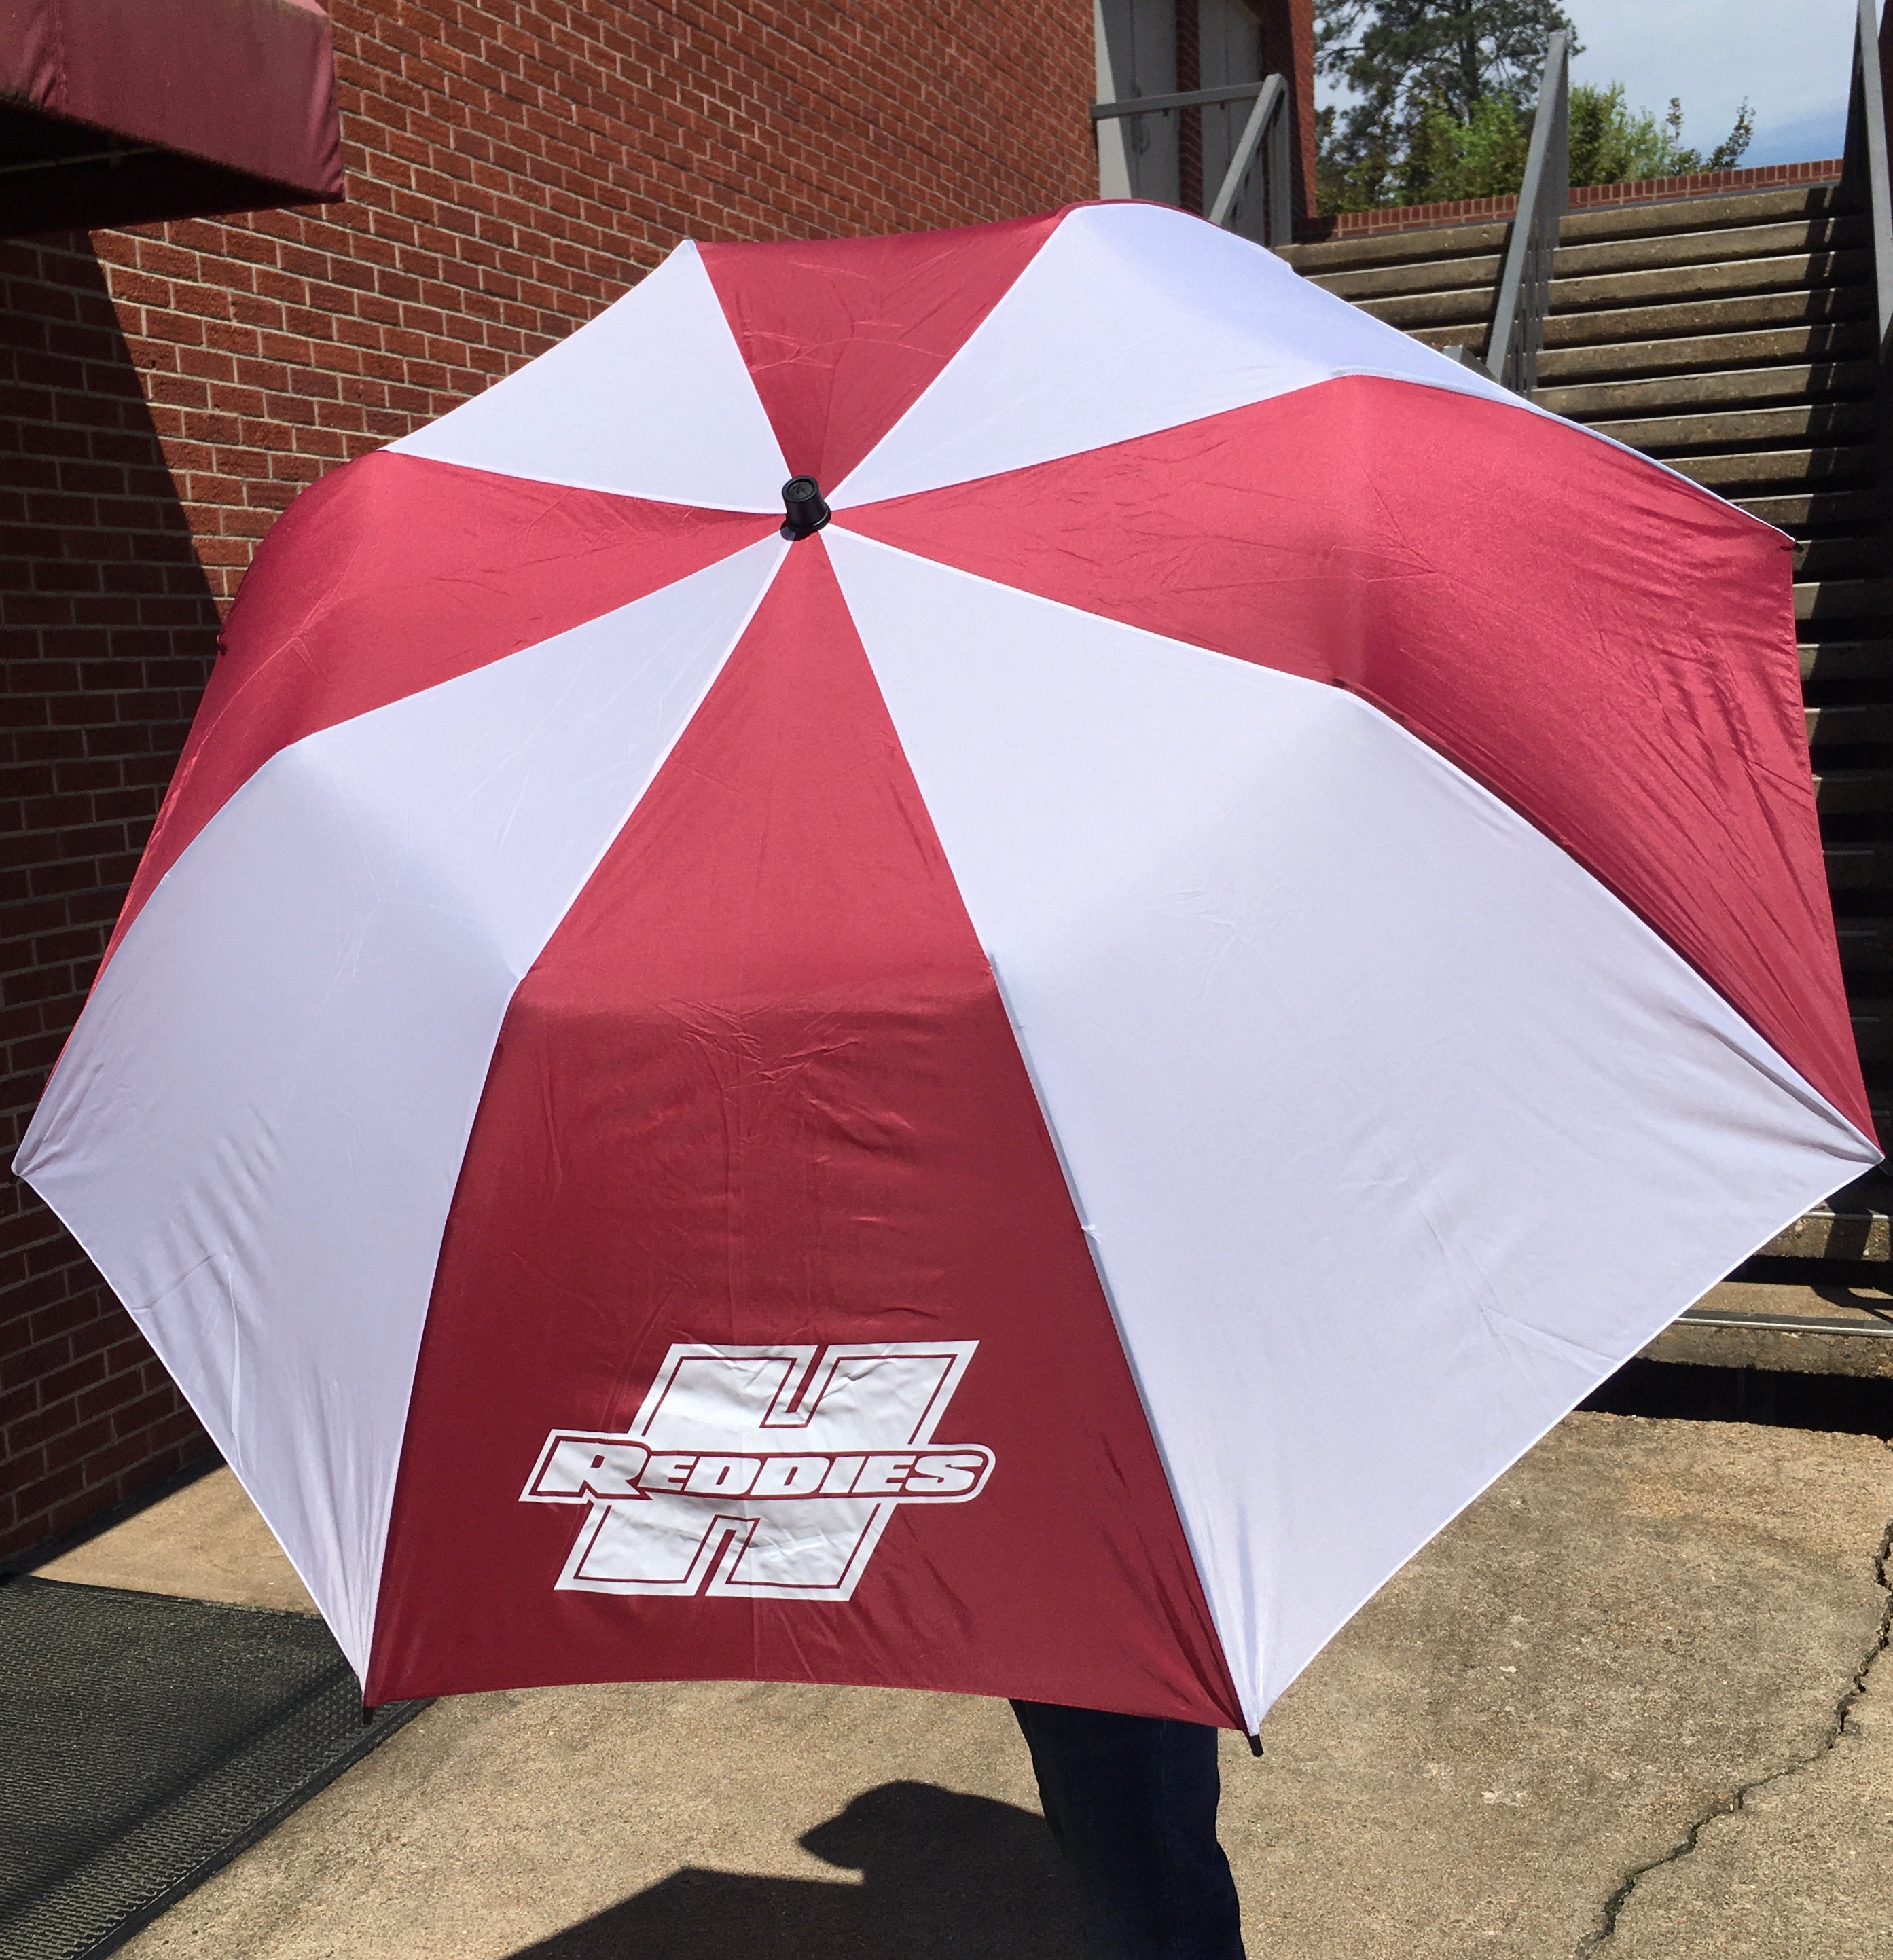 4500 Henderson Reddies Big Storm Umbrella